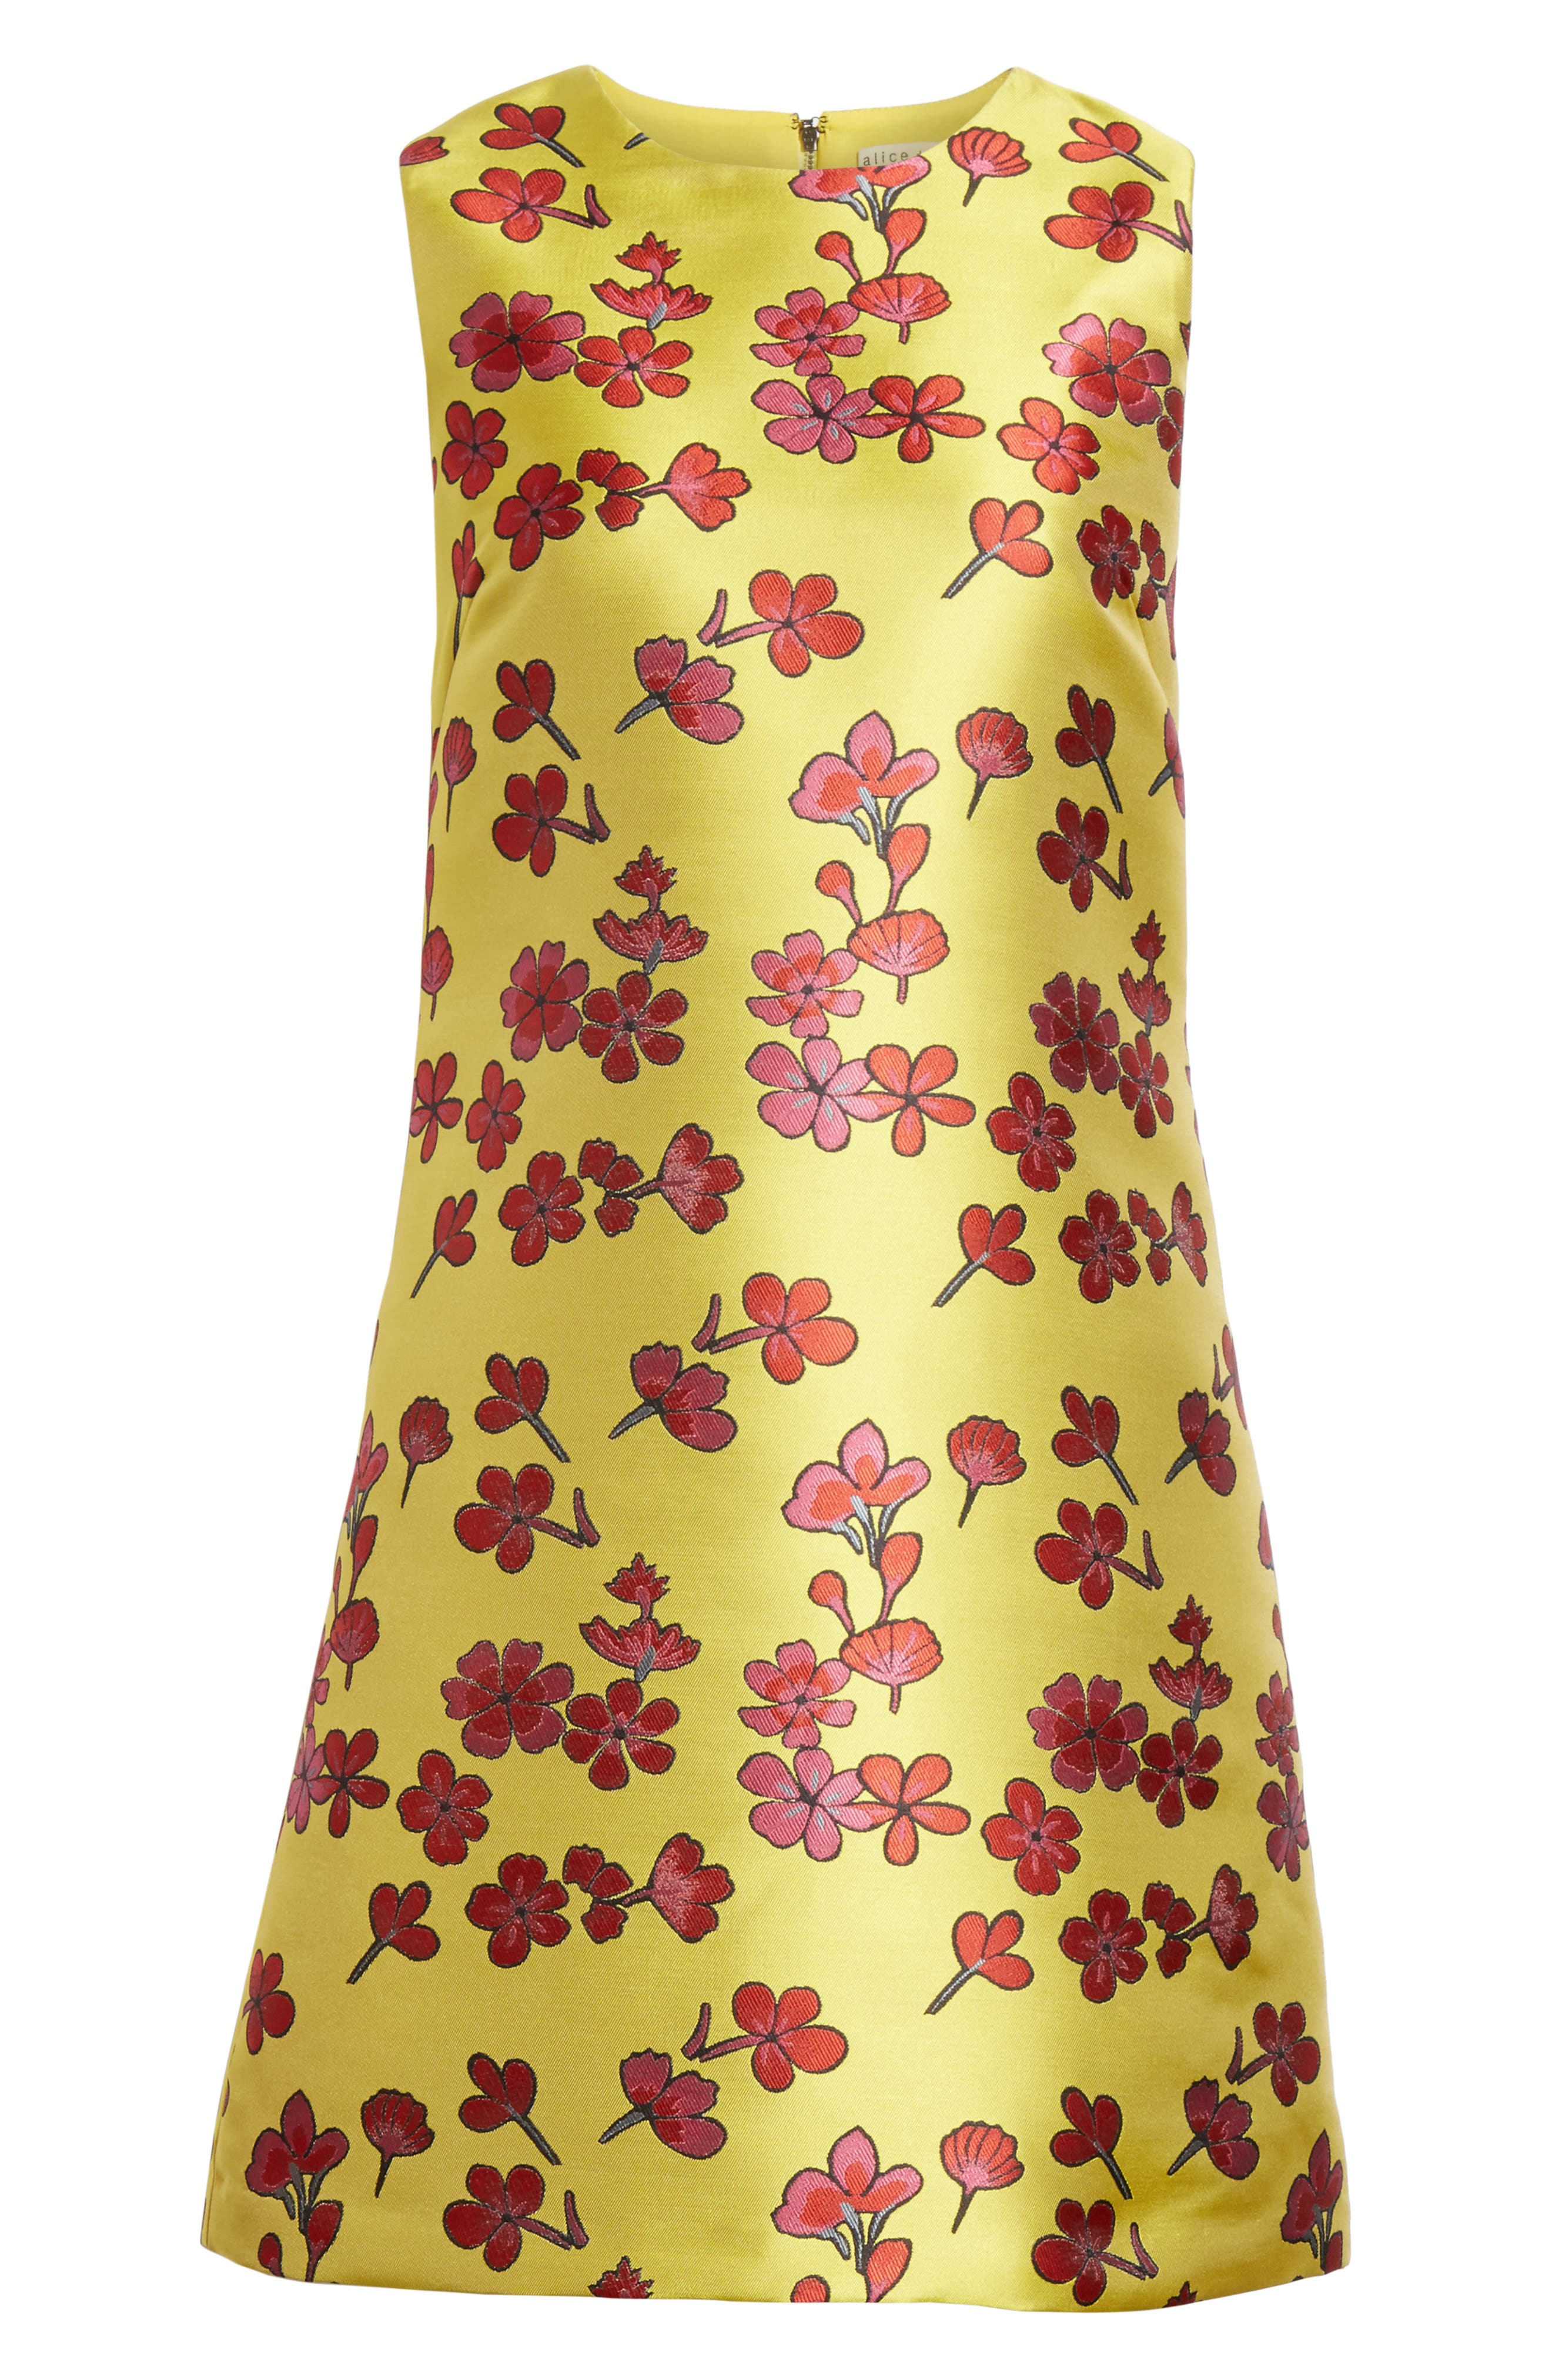 Coley Floral A-Line Shift Dress,                             Alternate thumbnail 6, color,                             Sunflower/ Poppy